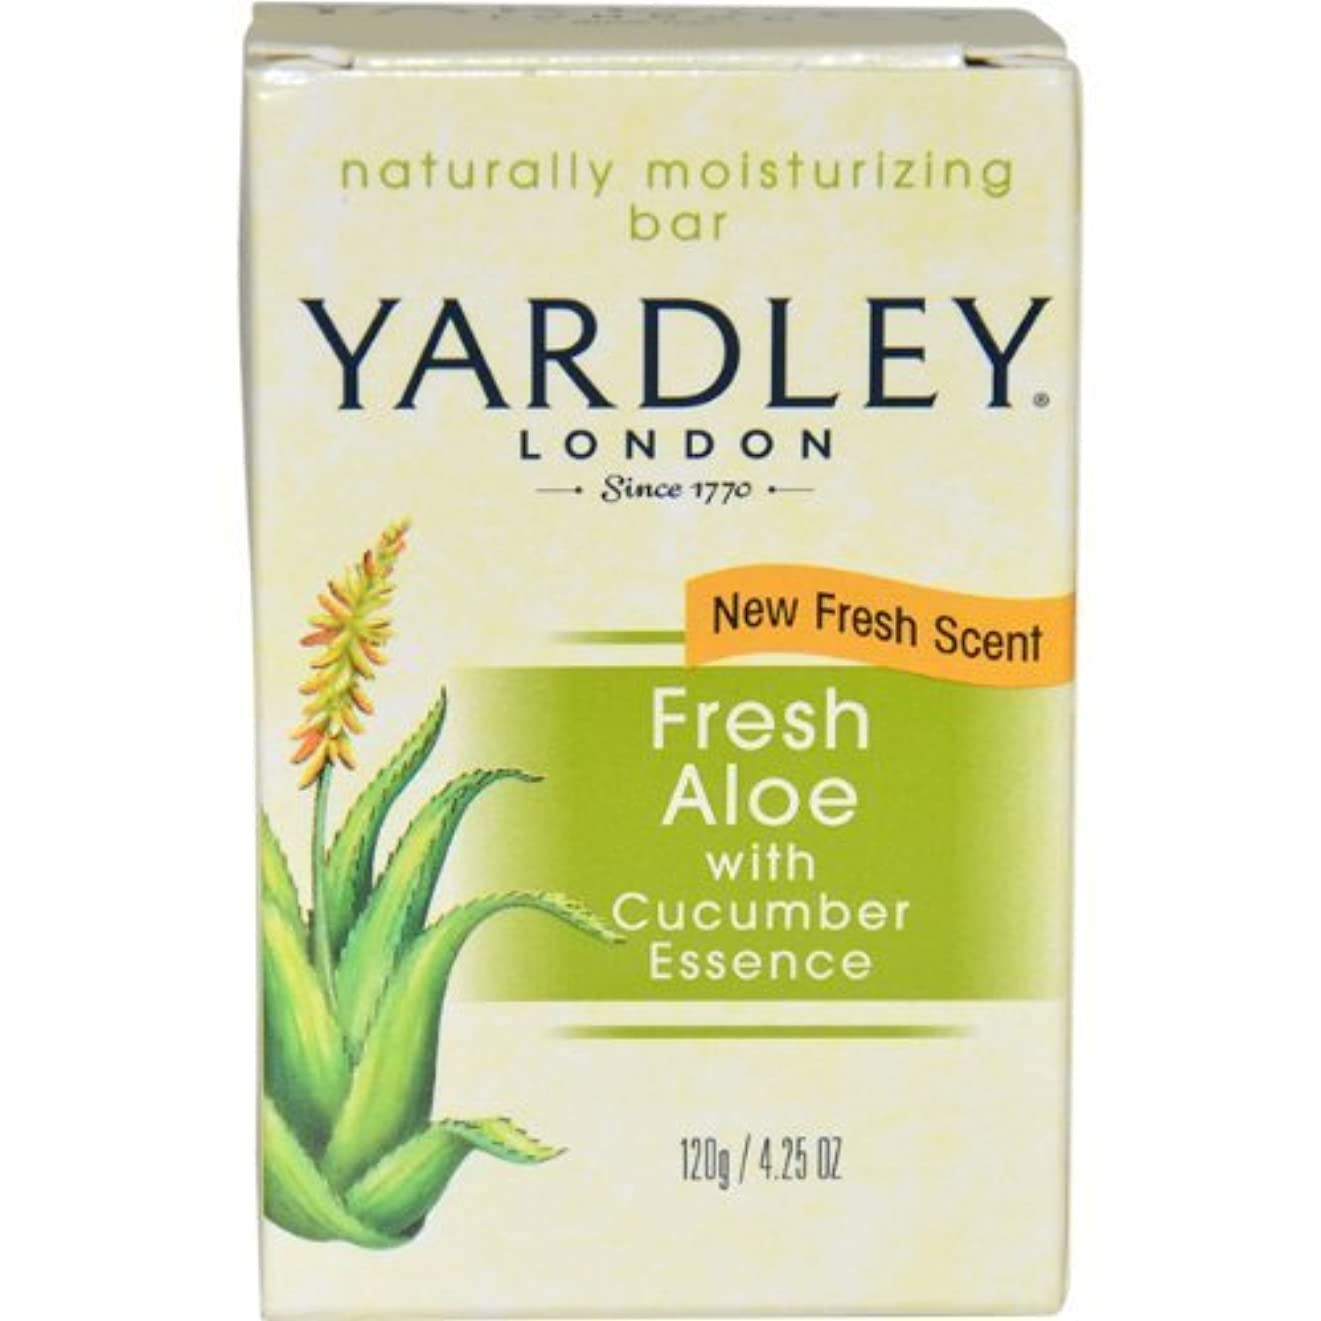 例外確率どんよりしたFresh Aloe with Cucumber Essence Bar Soap Soap Unisex by Yardley, 4.25 Ounce (Packaging May Vary) by Yardley [...